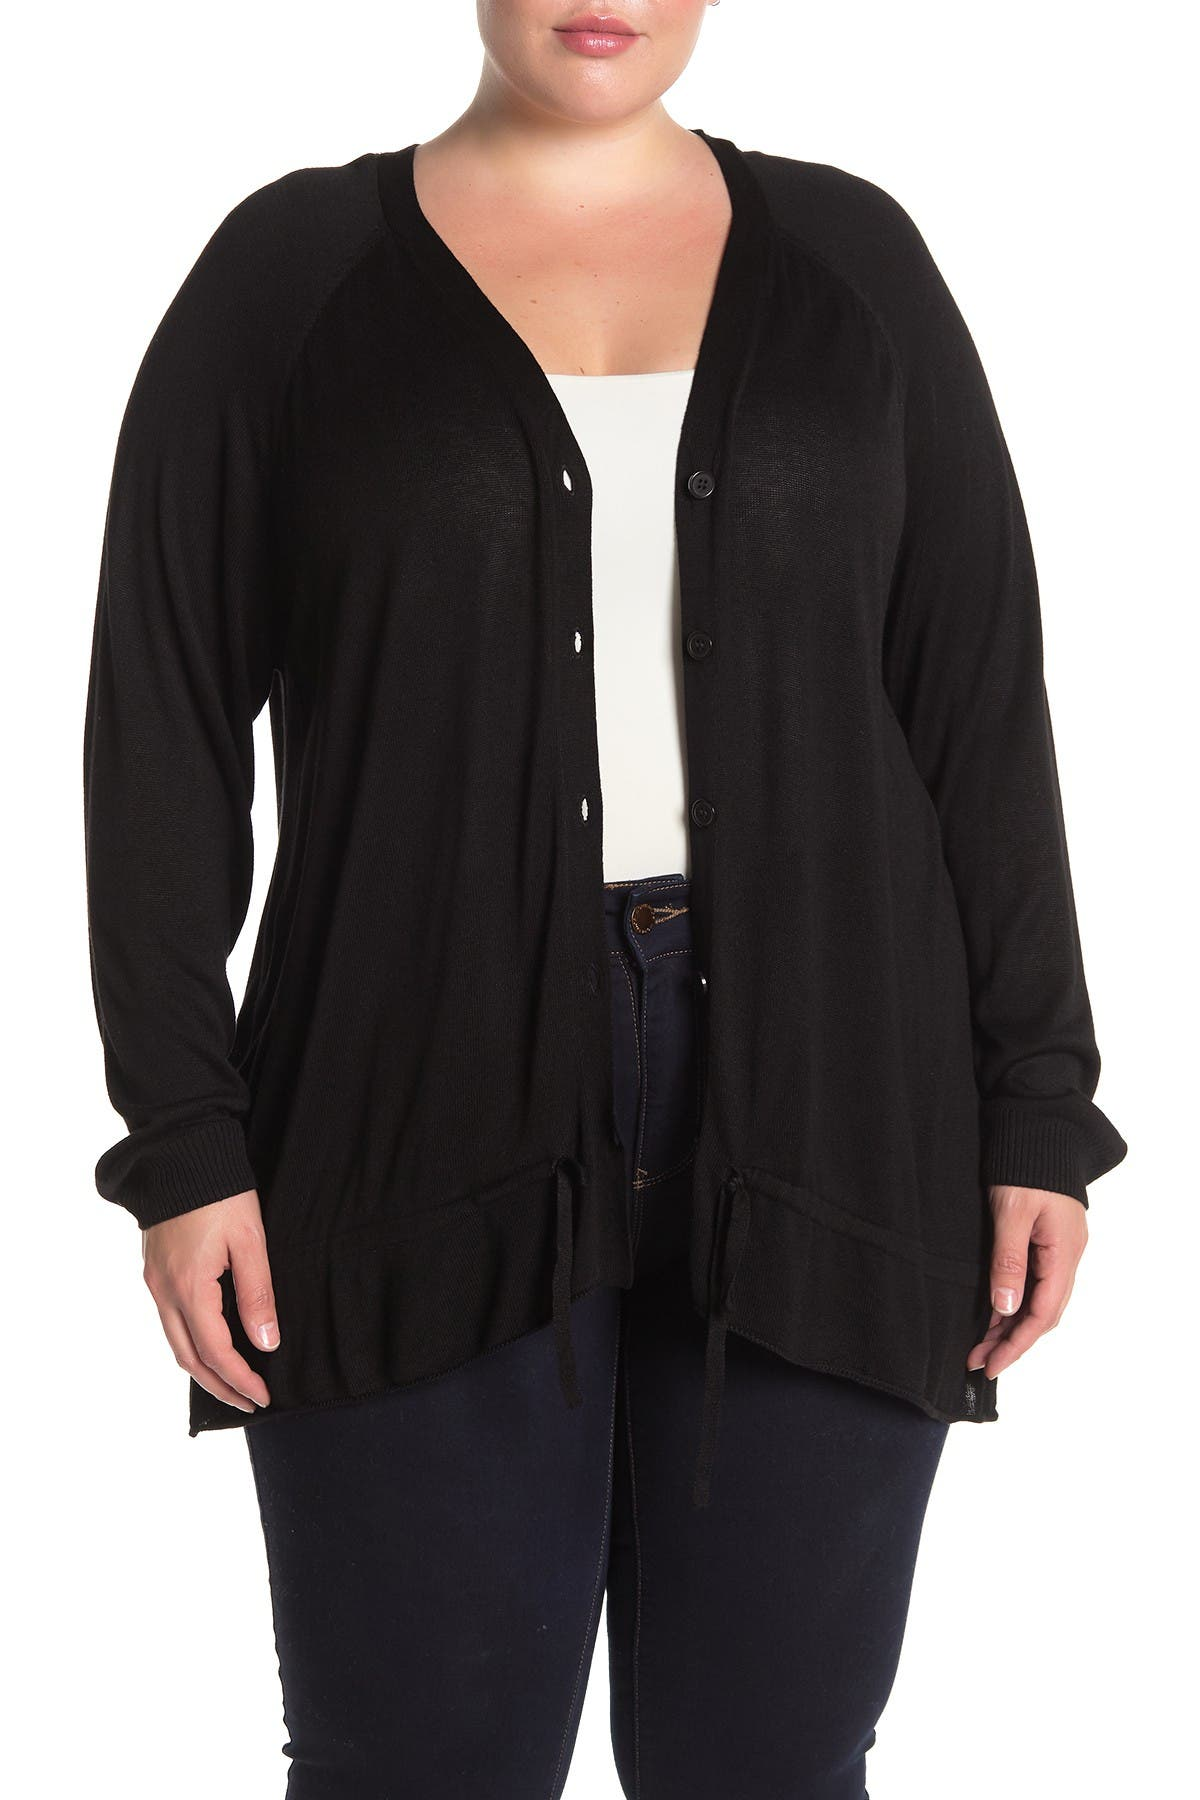 Image of One A V-Neck Button Front Ruffled Cardigan